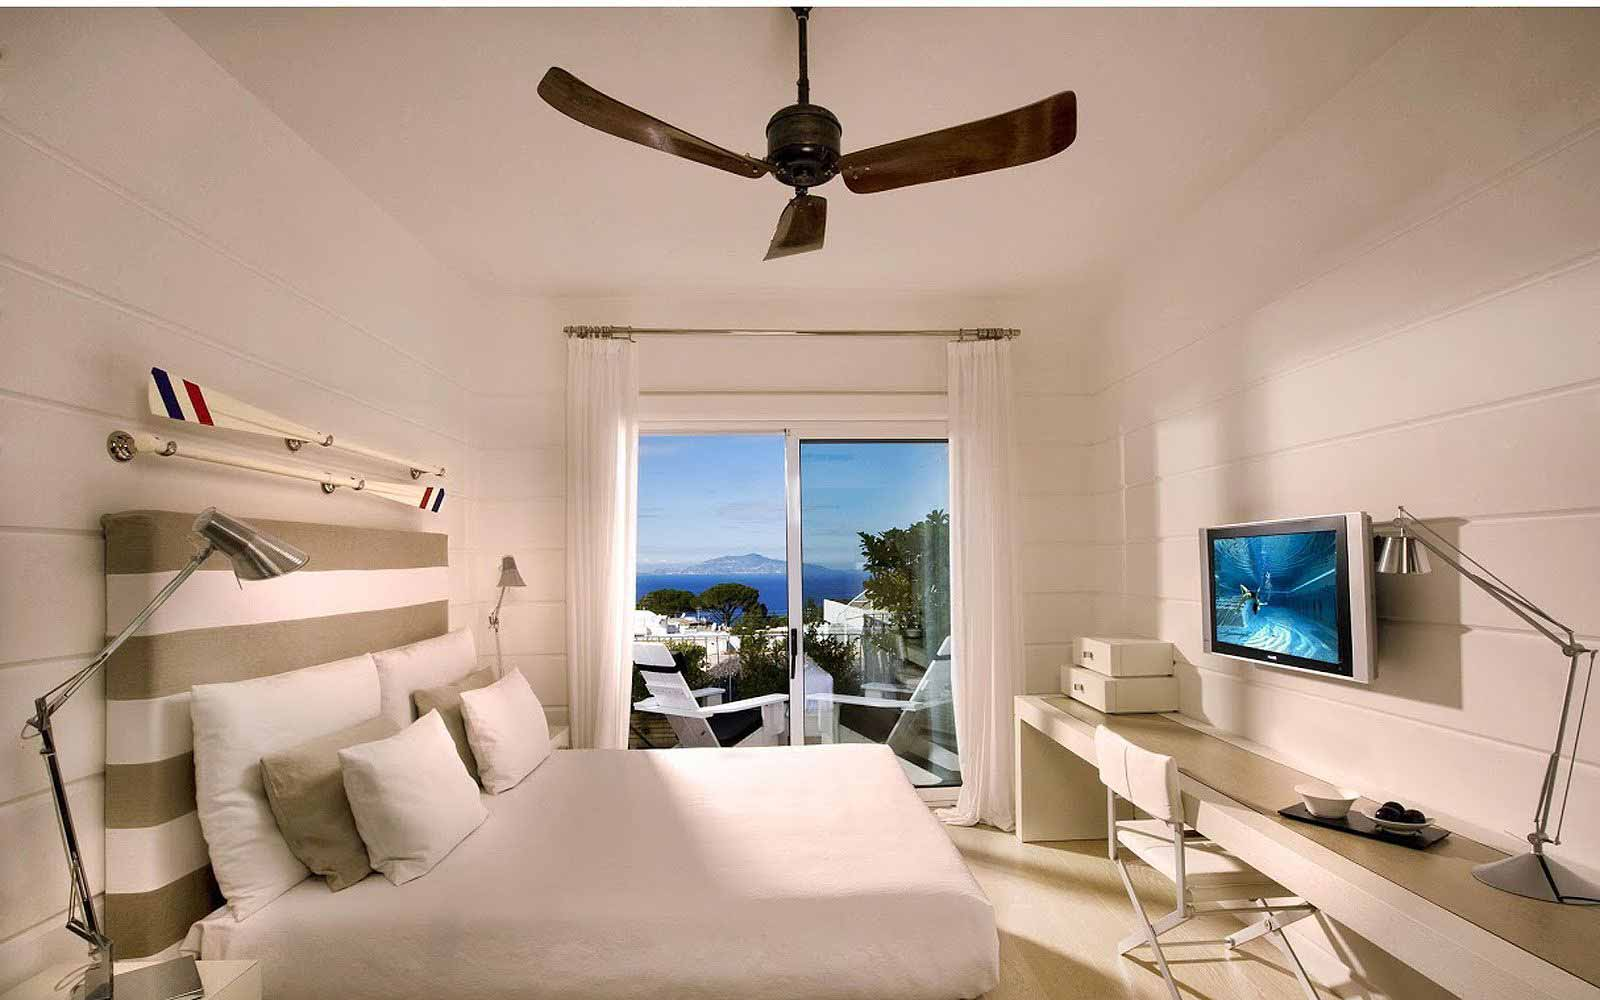 Superior Room seaview at Capri Palace Hotel & Spa